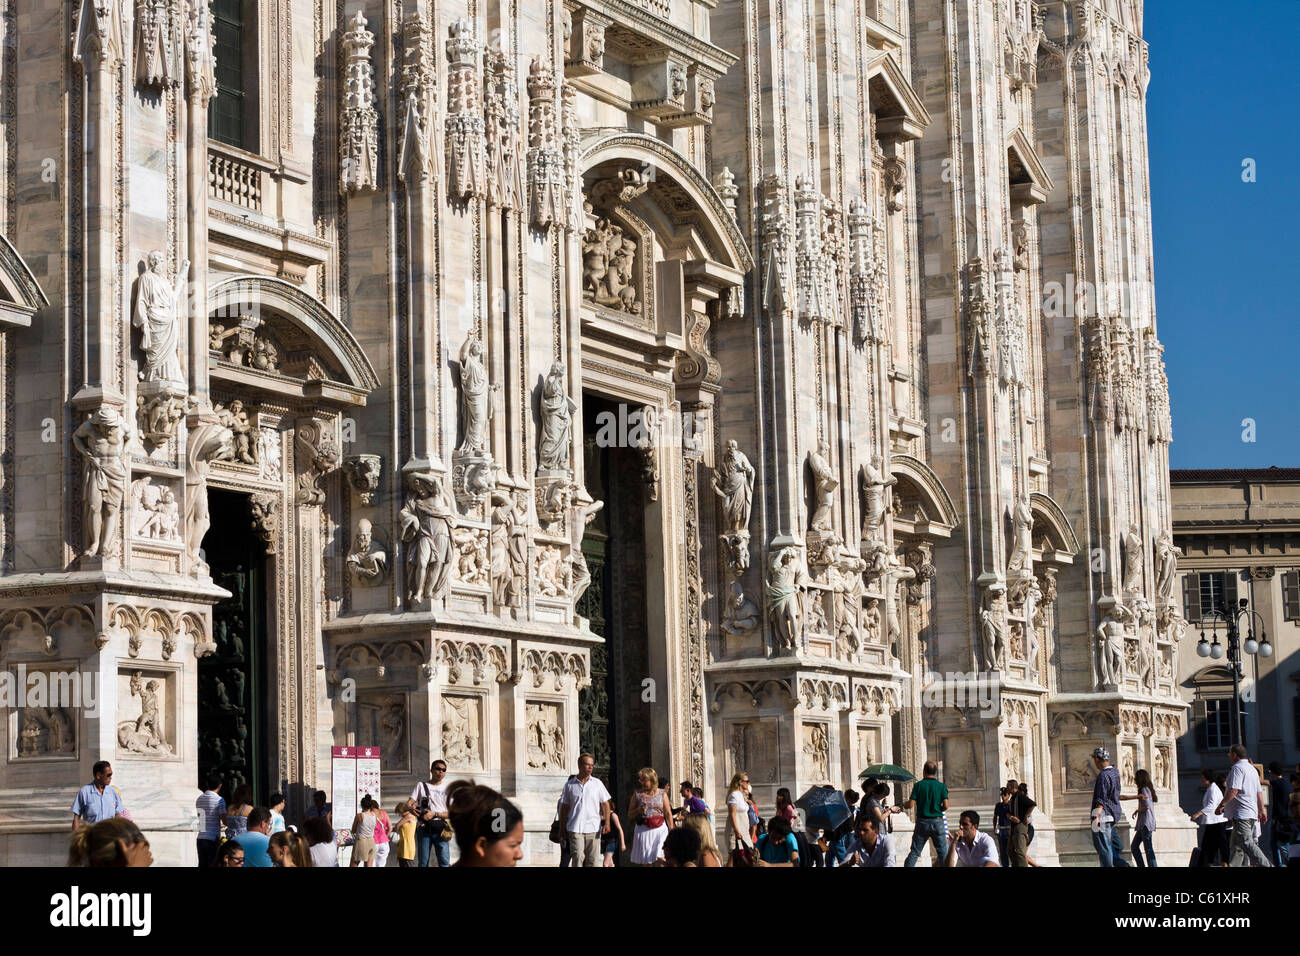 Tourists outside Milan cathedral - Stock Image